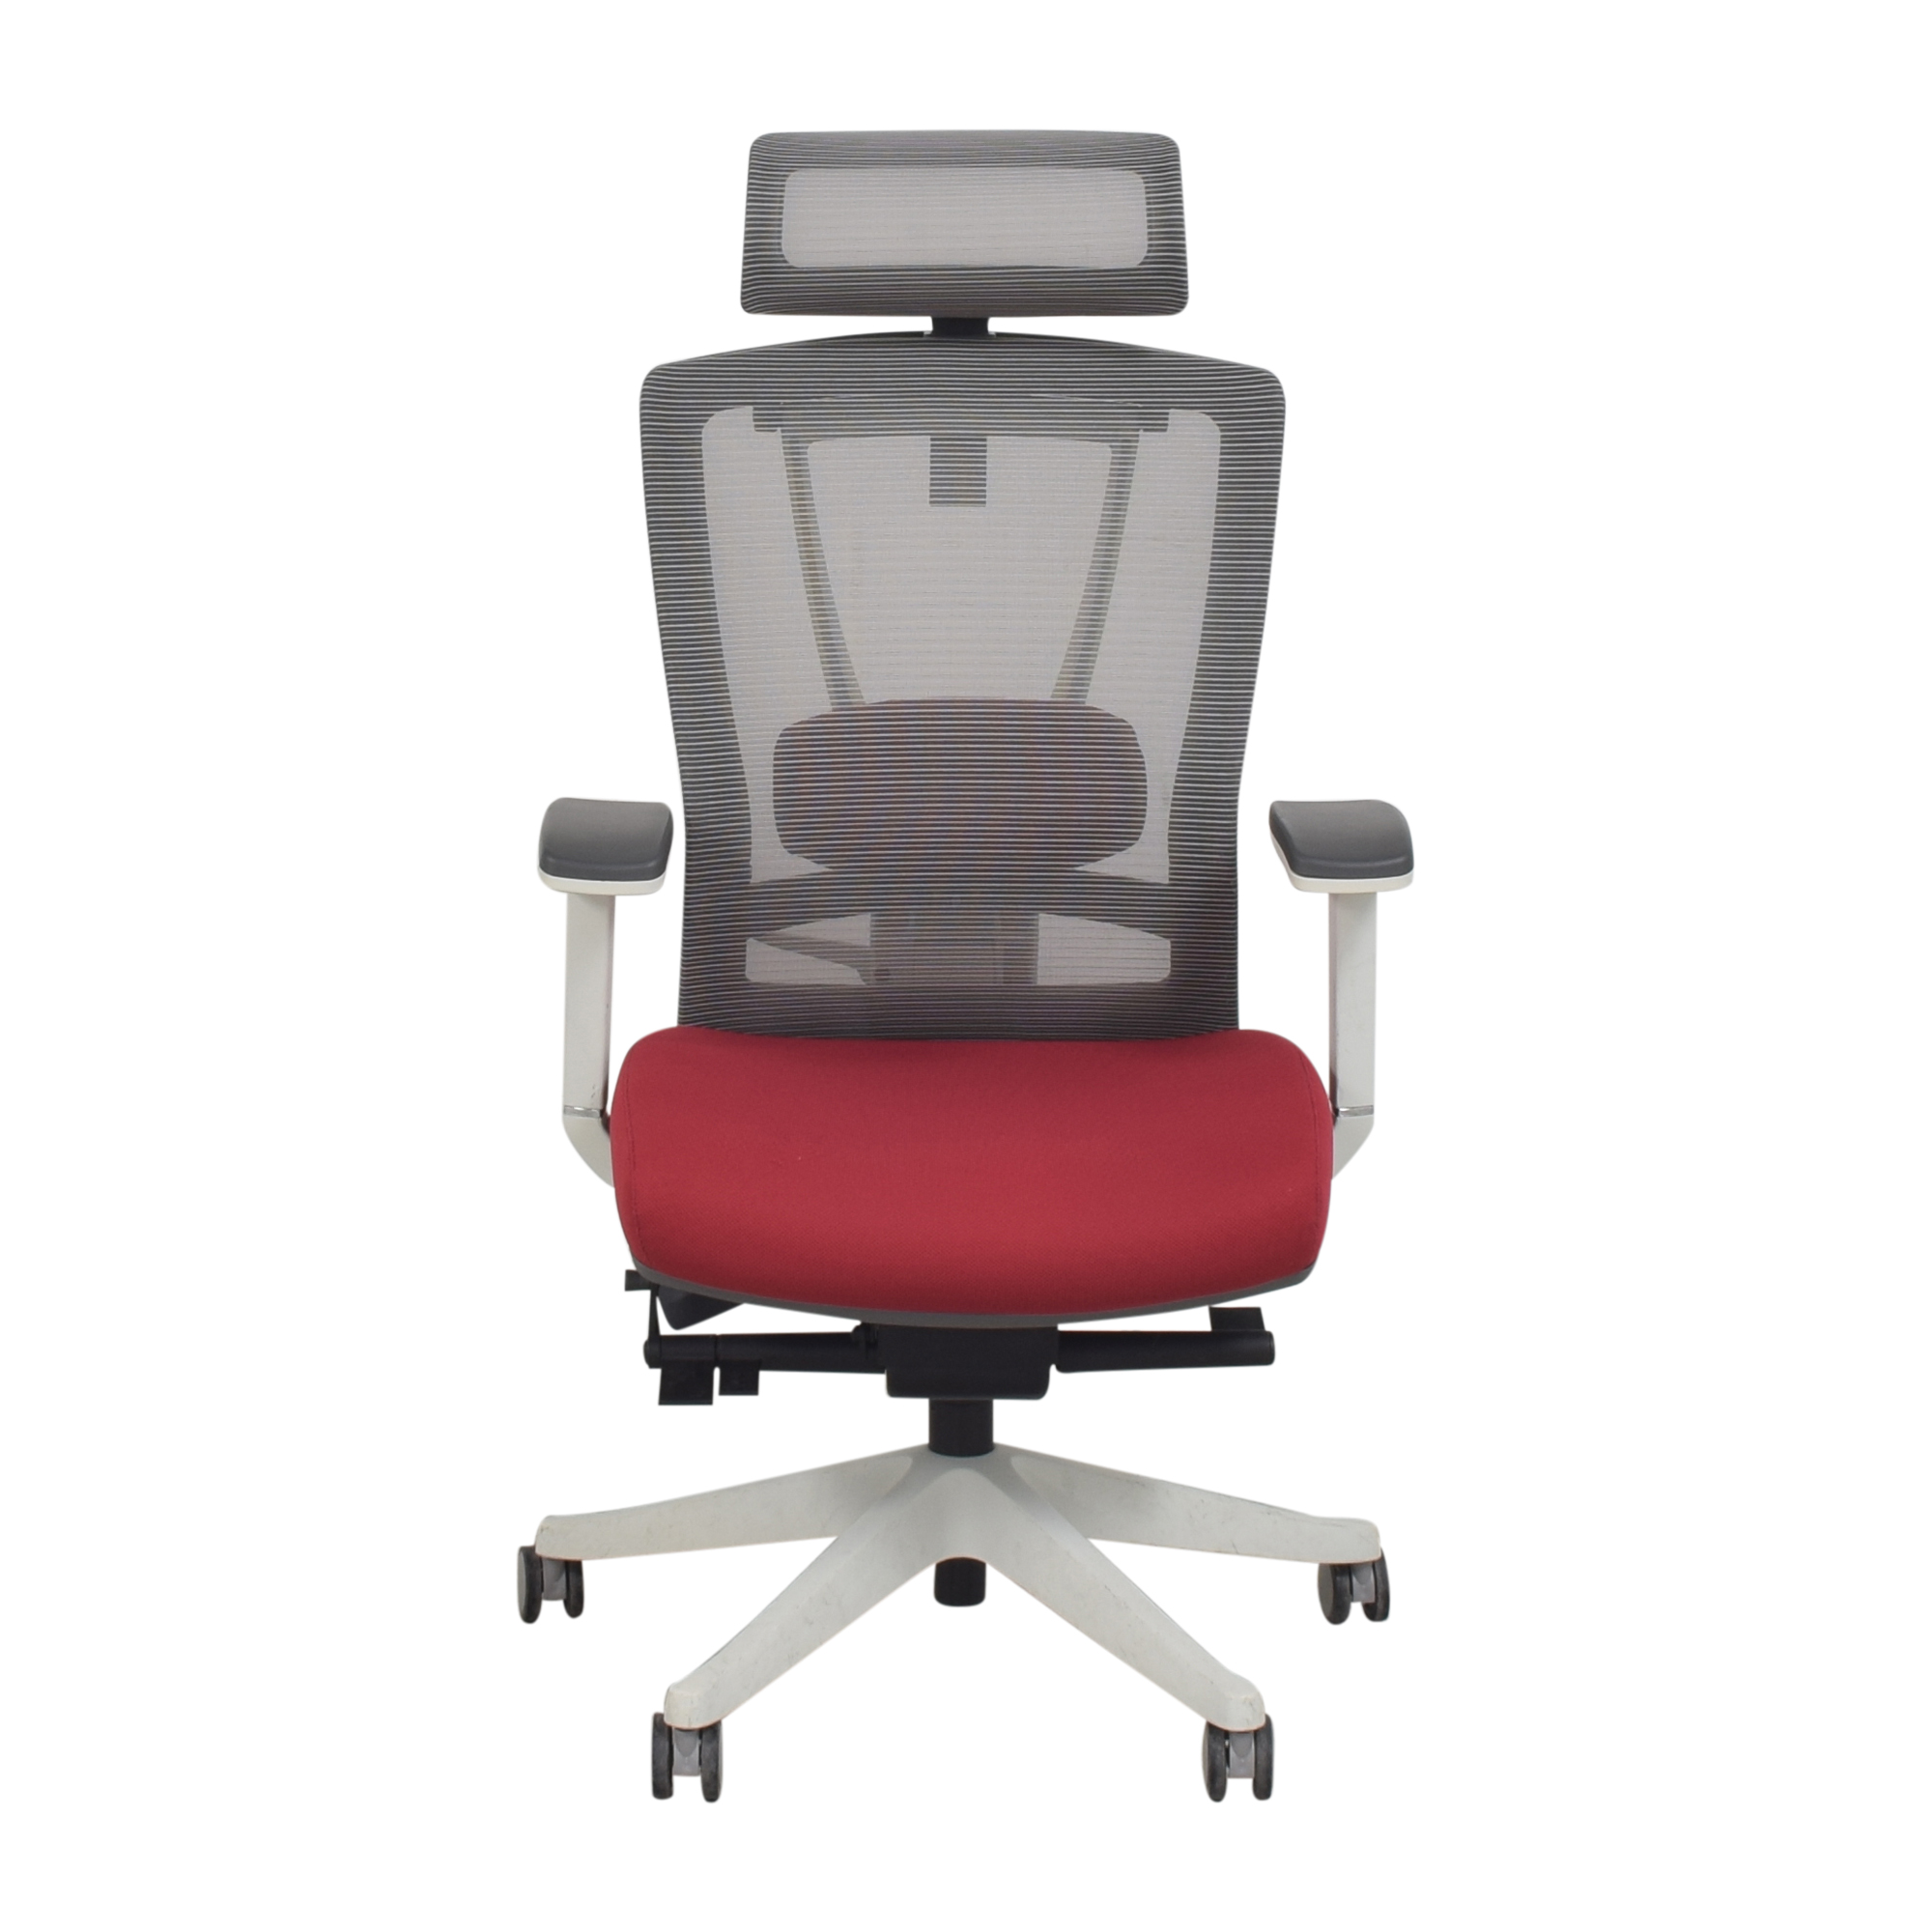 Autonomous Autonomous ErgoChair 2 Office Chair on sale